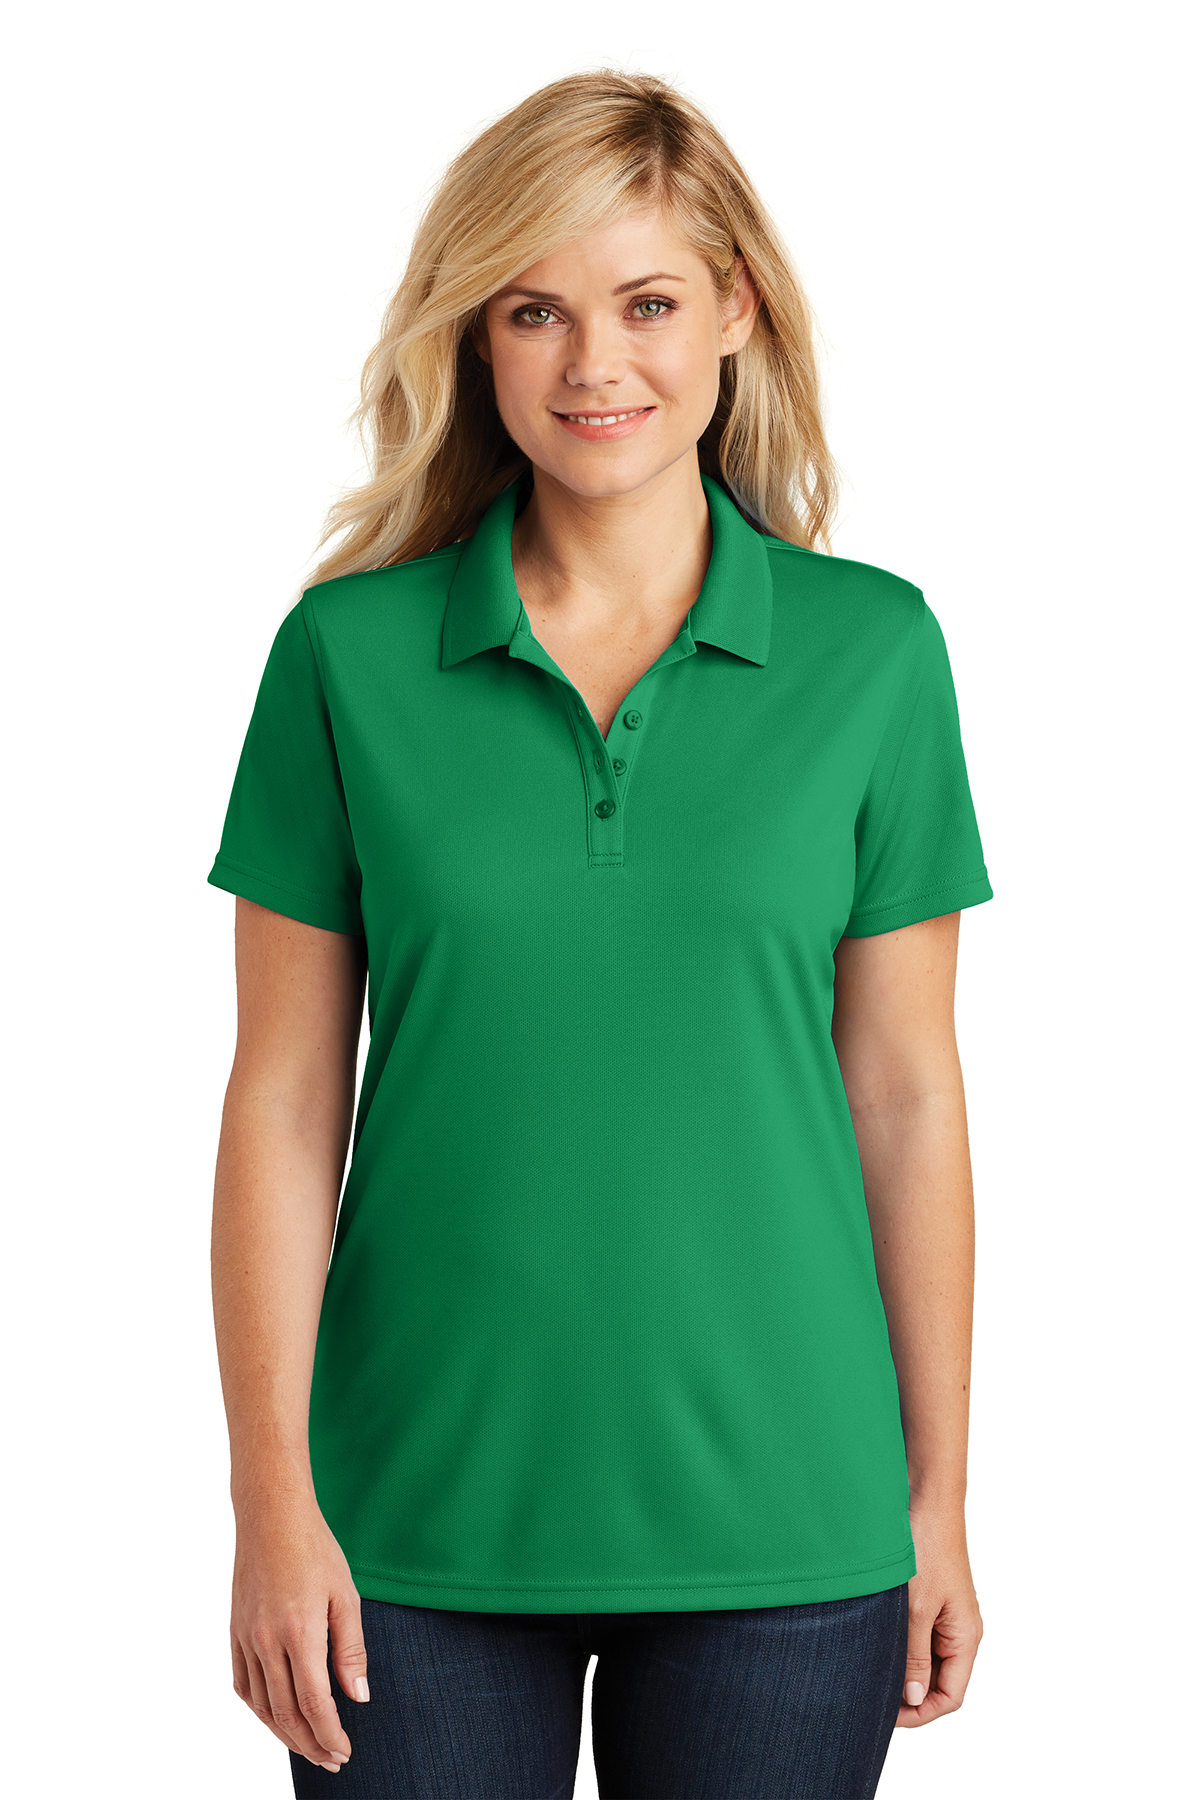 click to view Bright Kelly Green